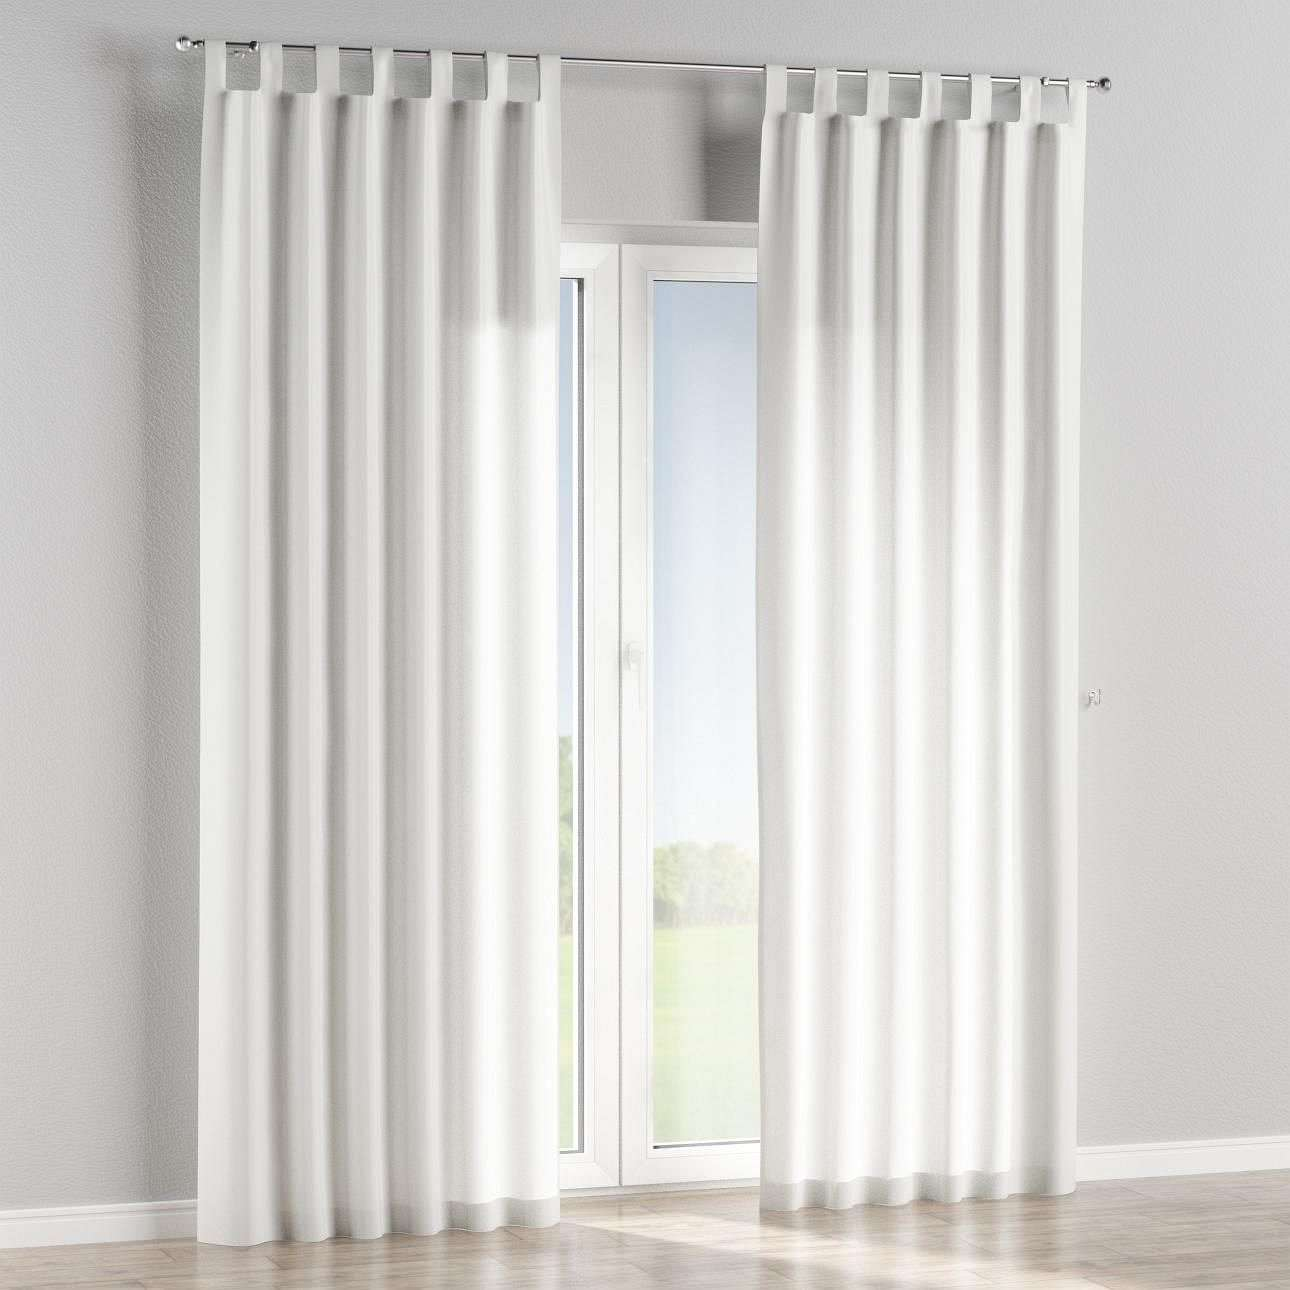 Tab top curtains in collection Milano, fabric: 150-35